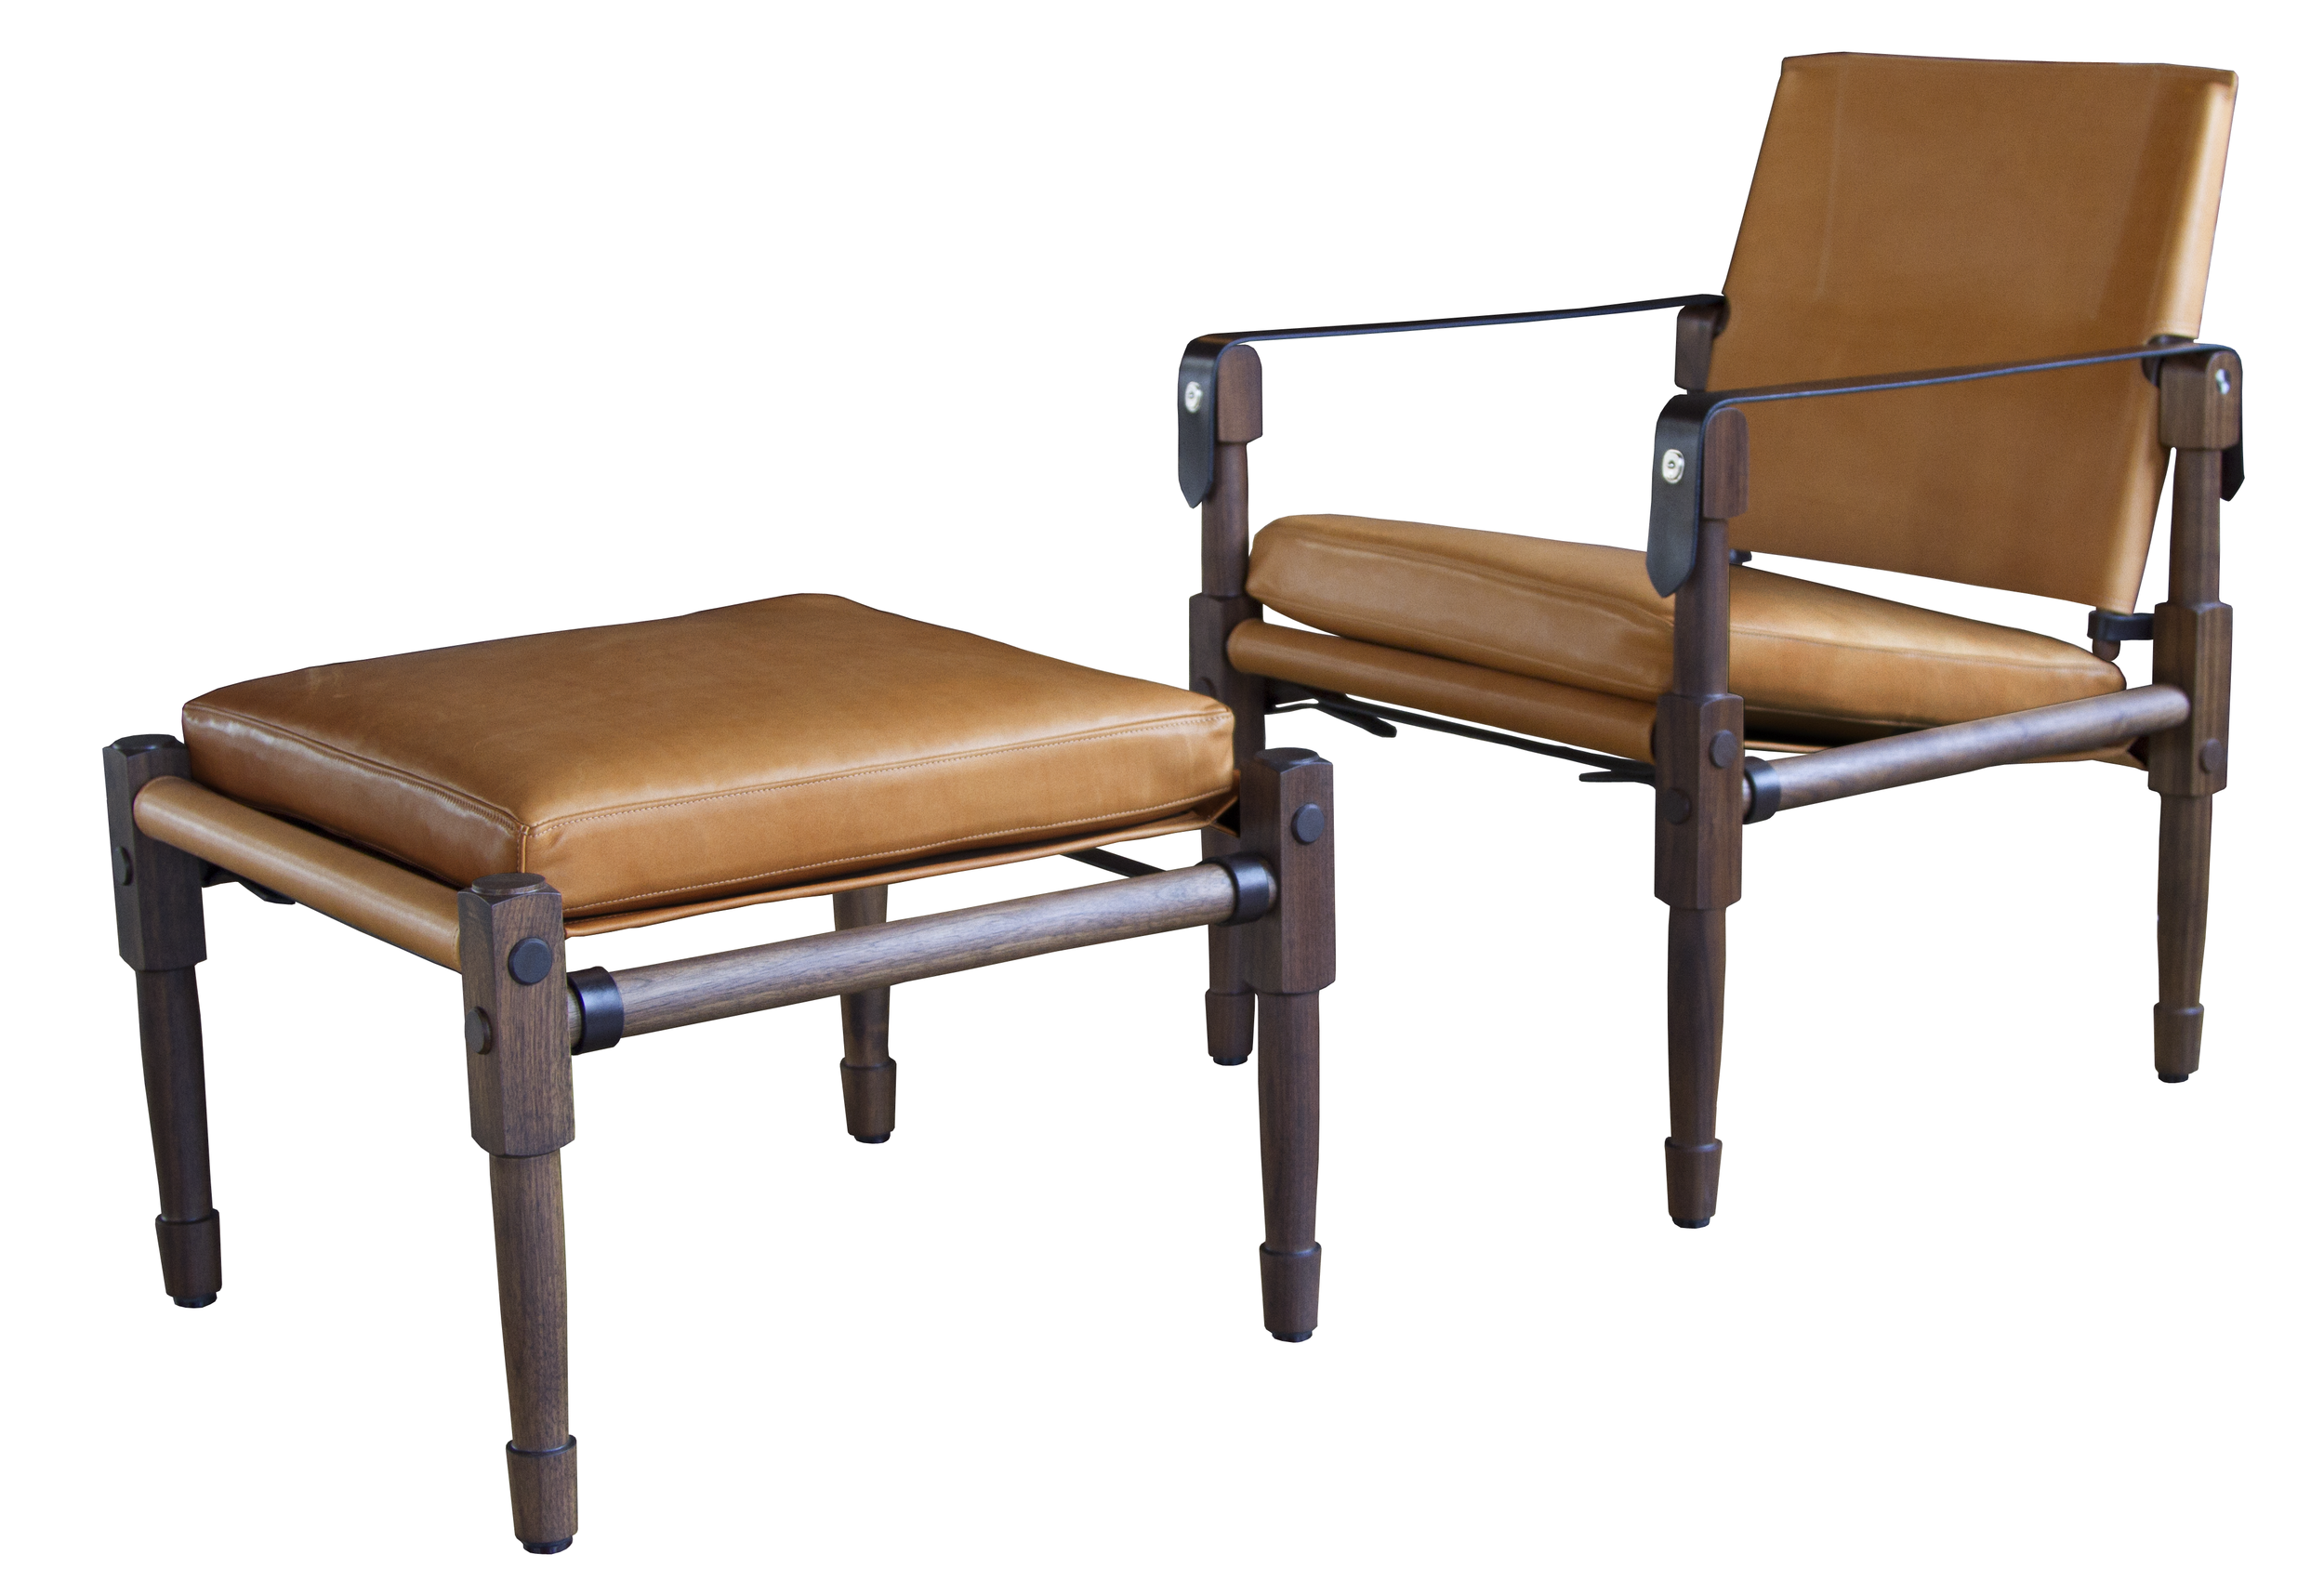 Chatwin Lounge Chair - Original and Ottoman